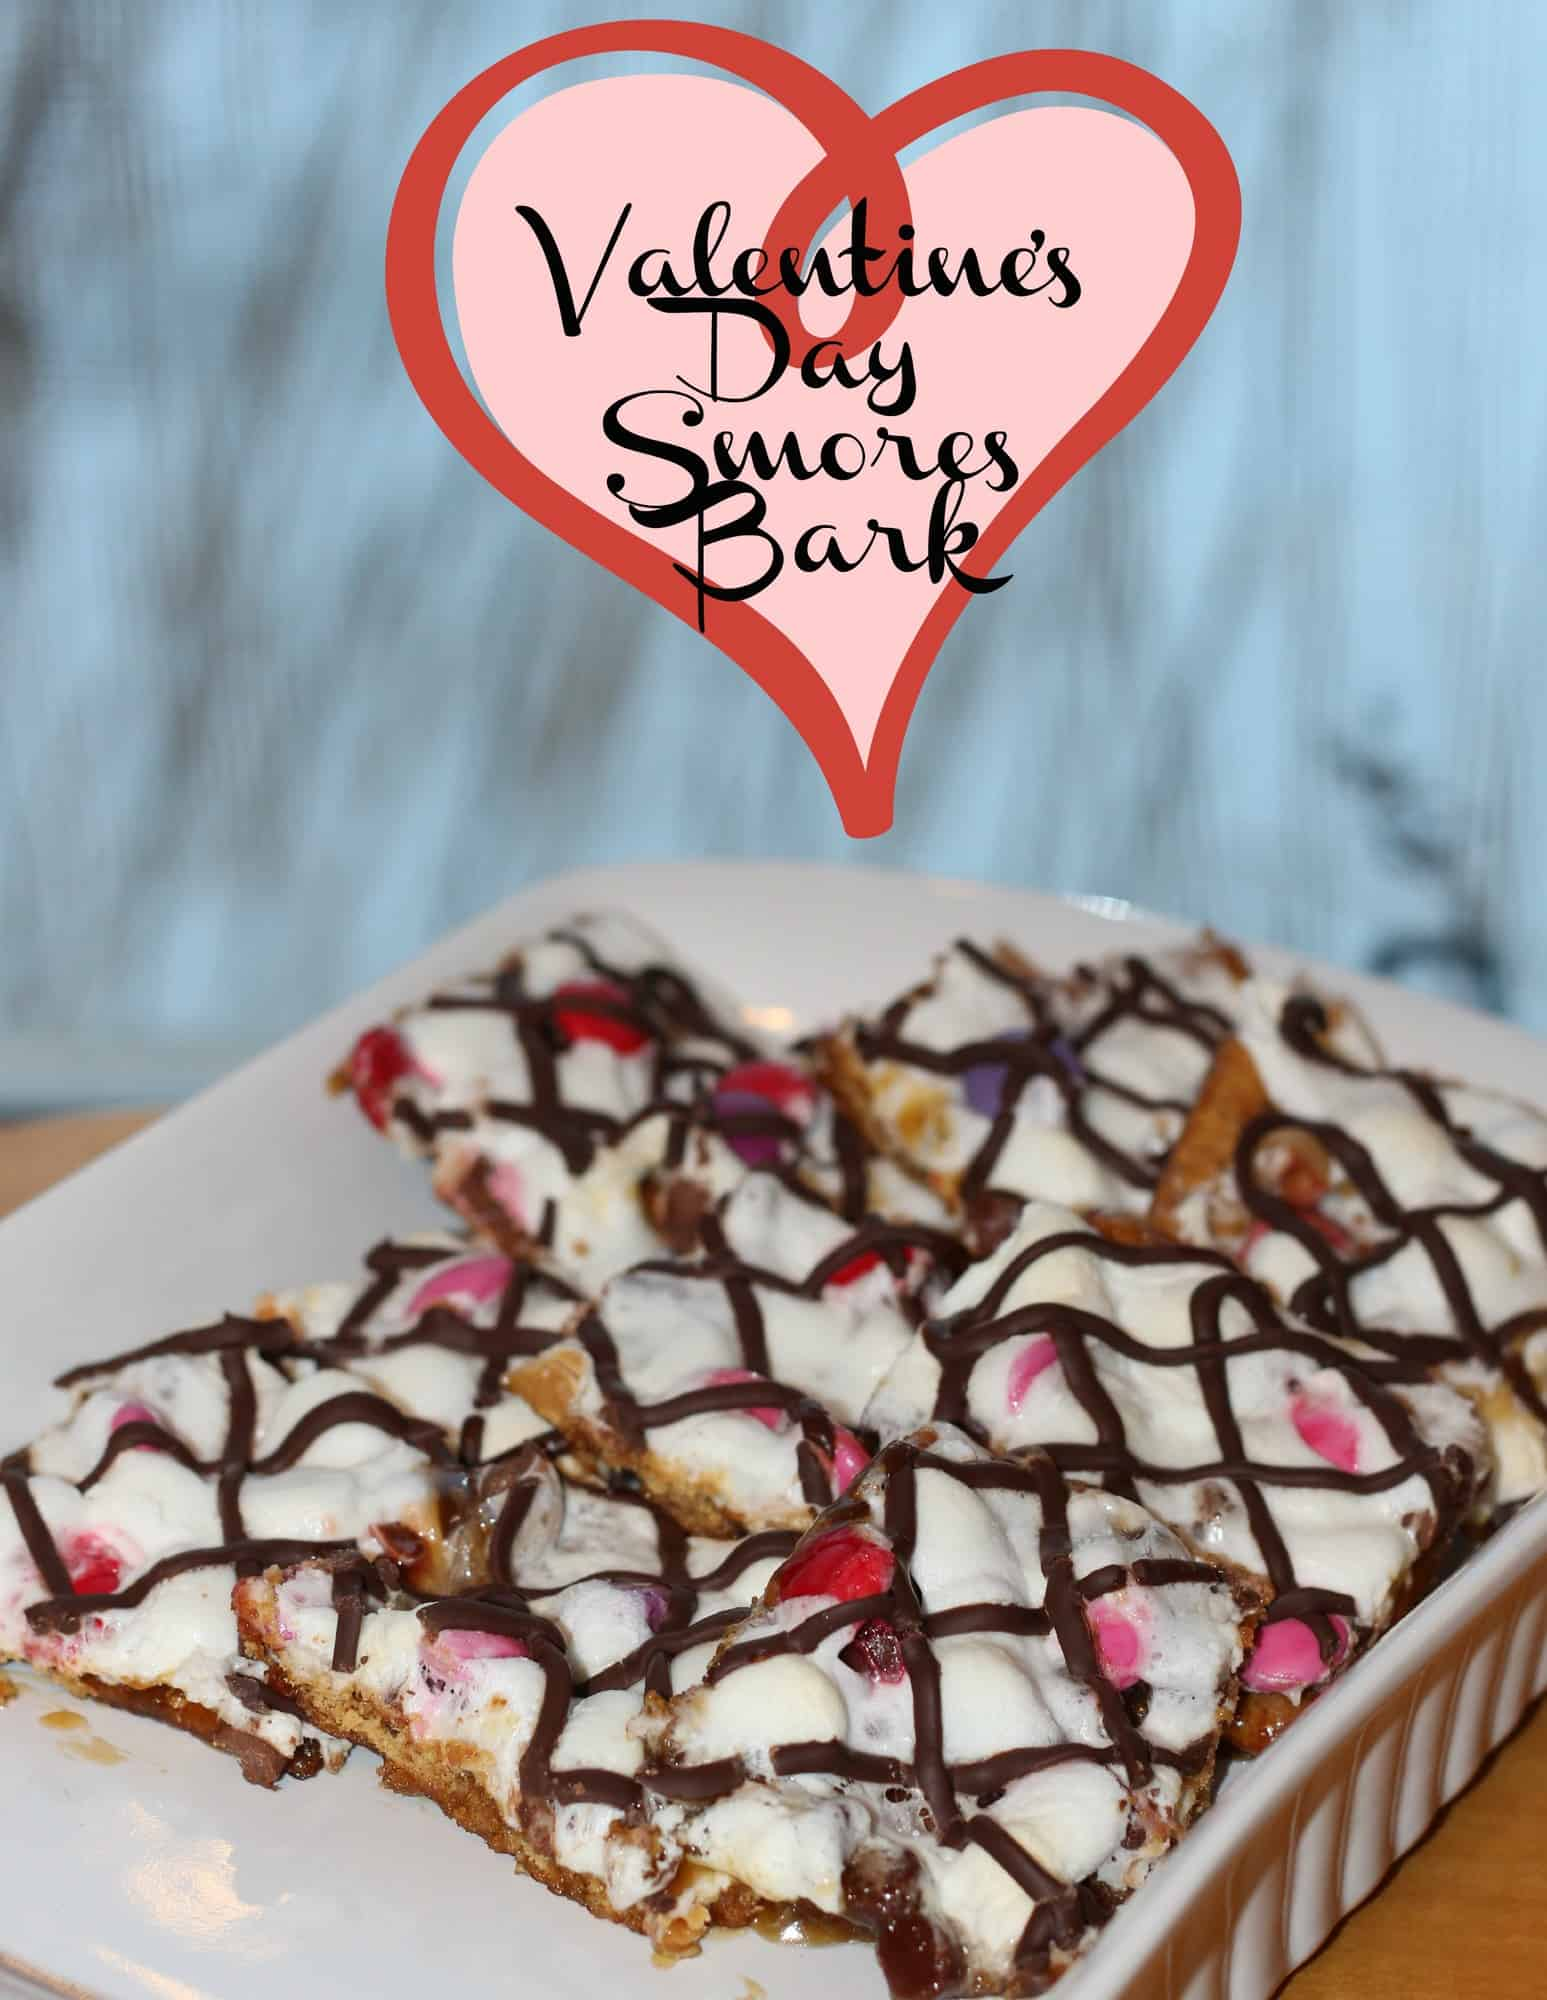 Valentines Day Smores Bark 3